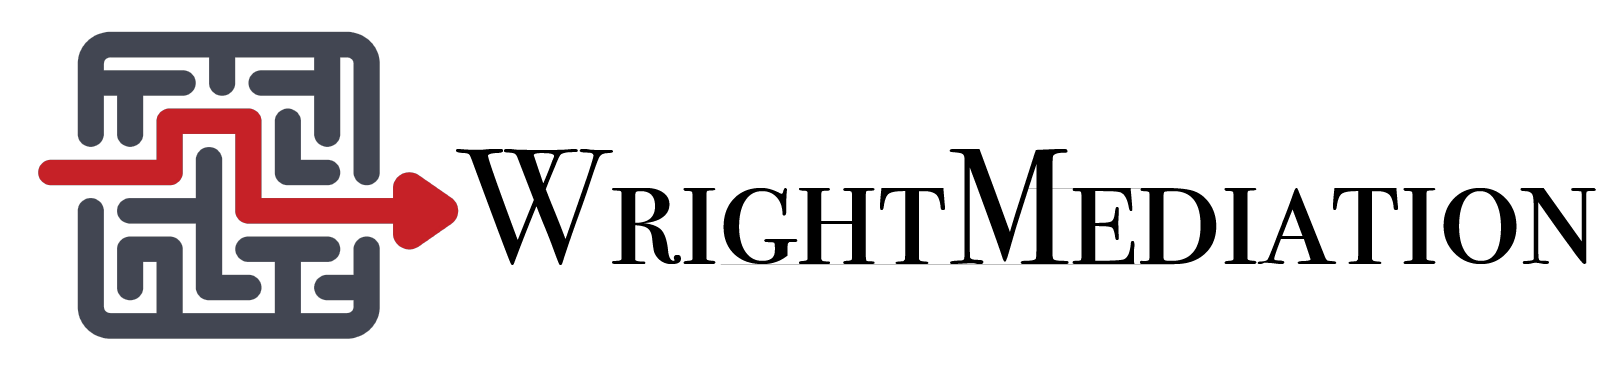 Wright Mediation